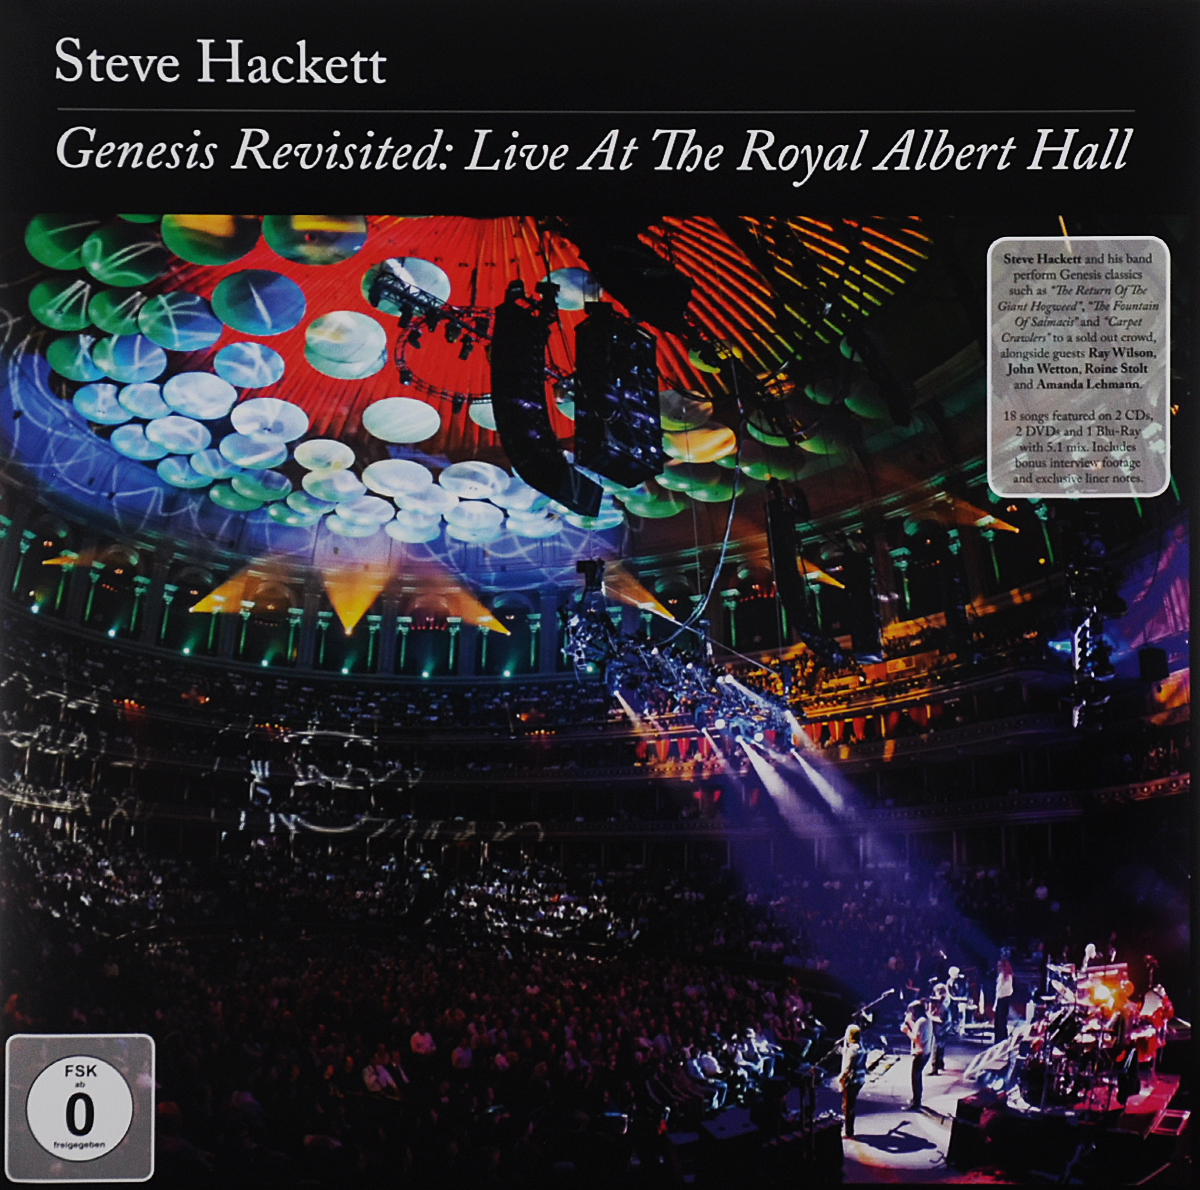 Стив Хэкетт Steve Hackett. Genesis Revisited. Live At The Royal Albert Hall (2 CD + 2 DVD + Blu-ray) giant 10x8x6m inflatable stage cover tent in white color toy tents